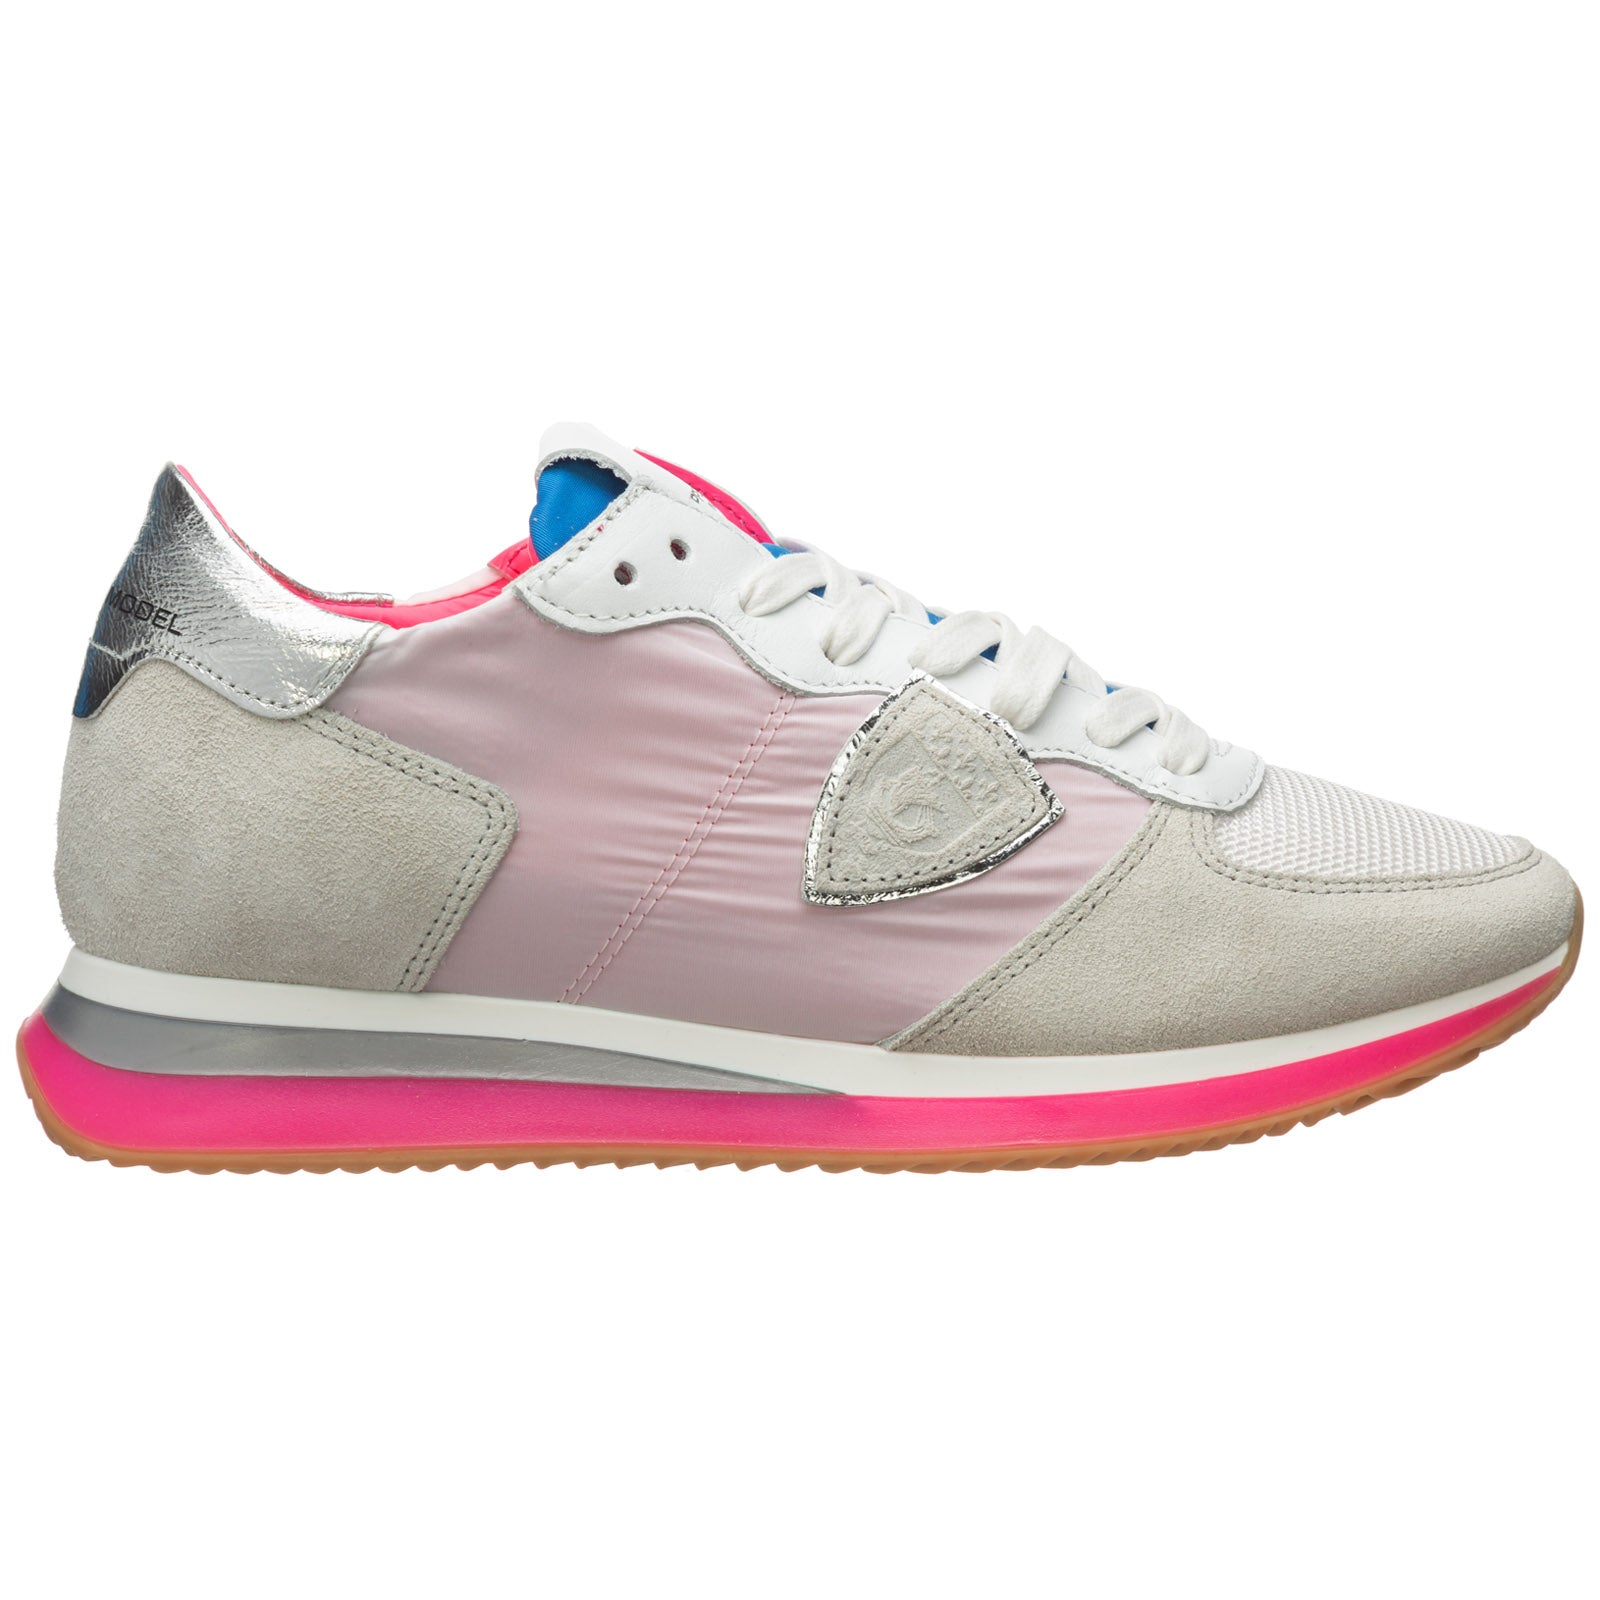 PHILIPPE MODEL PHILIPPE MODEL TRPX SNEAKERS